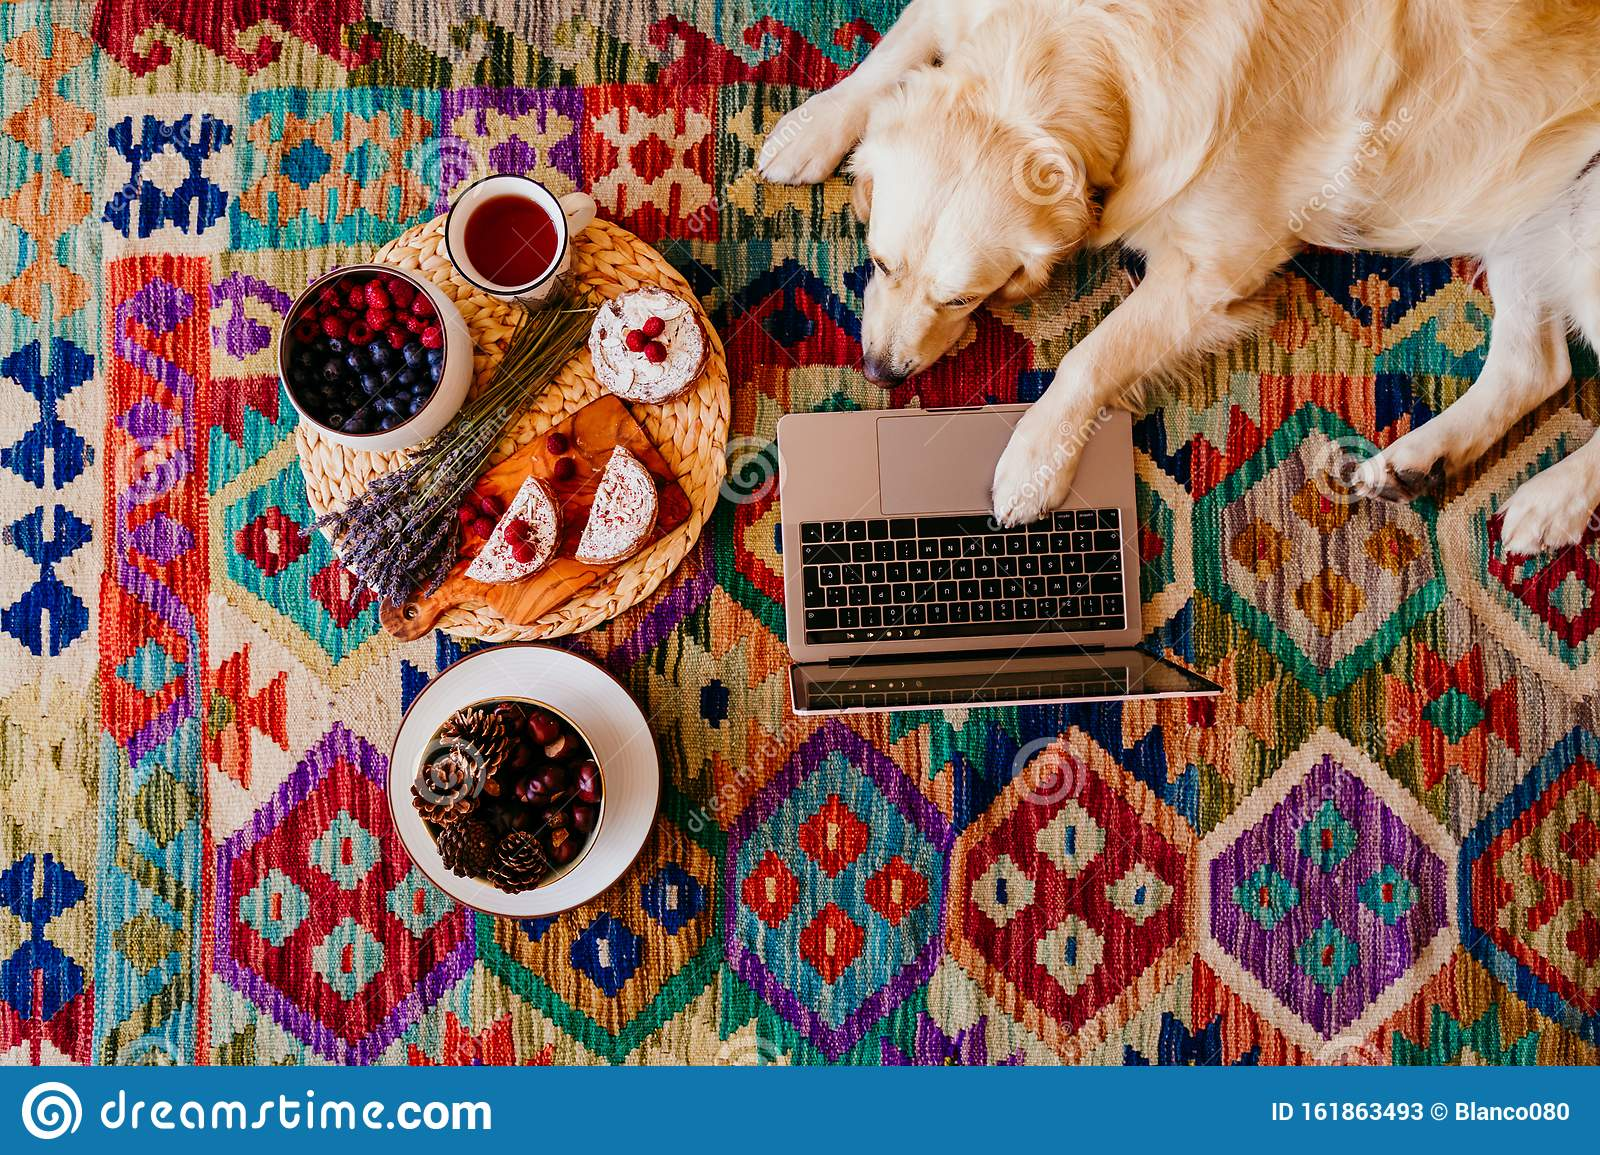 Adorable Golden Retriever Dog Lying On The Floor On A Colorful Carpet Healthy Breakfast Besides Working On Laptop Stock Image Image Of House Laptop 161863493